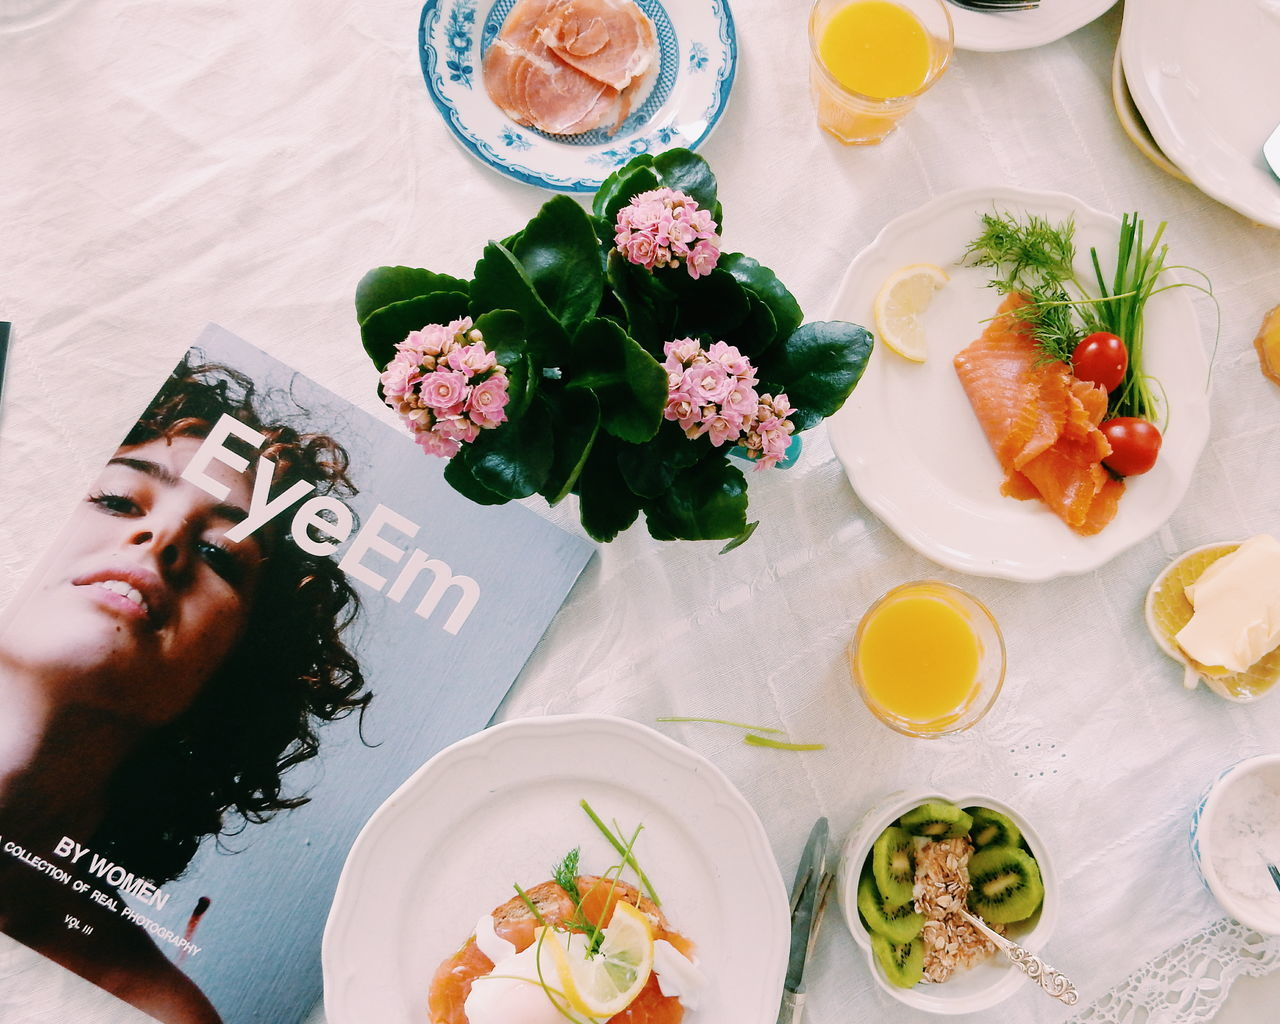 Directly above shot of food on table by flower vase and magazine